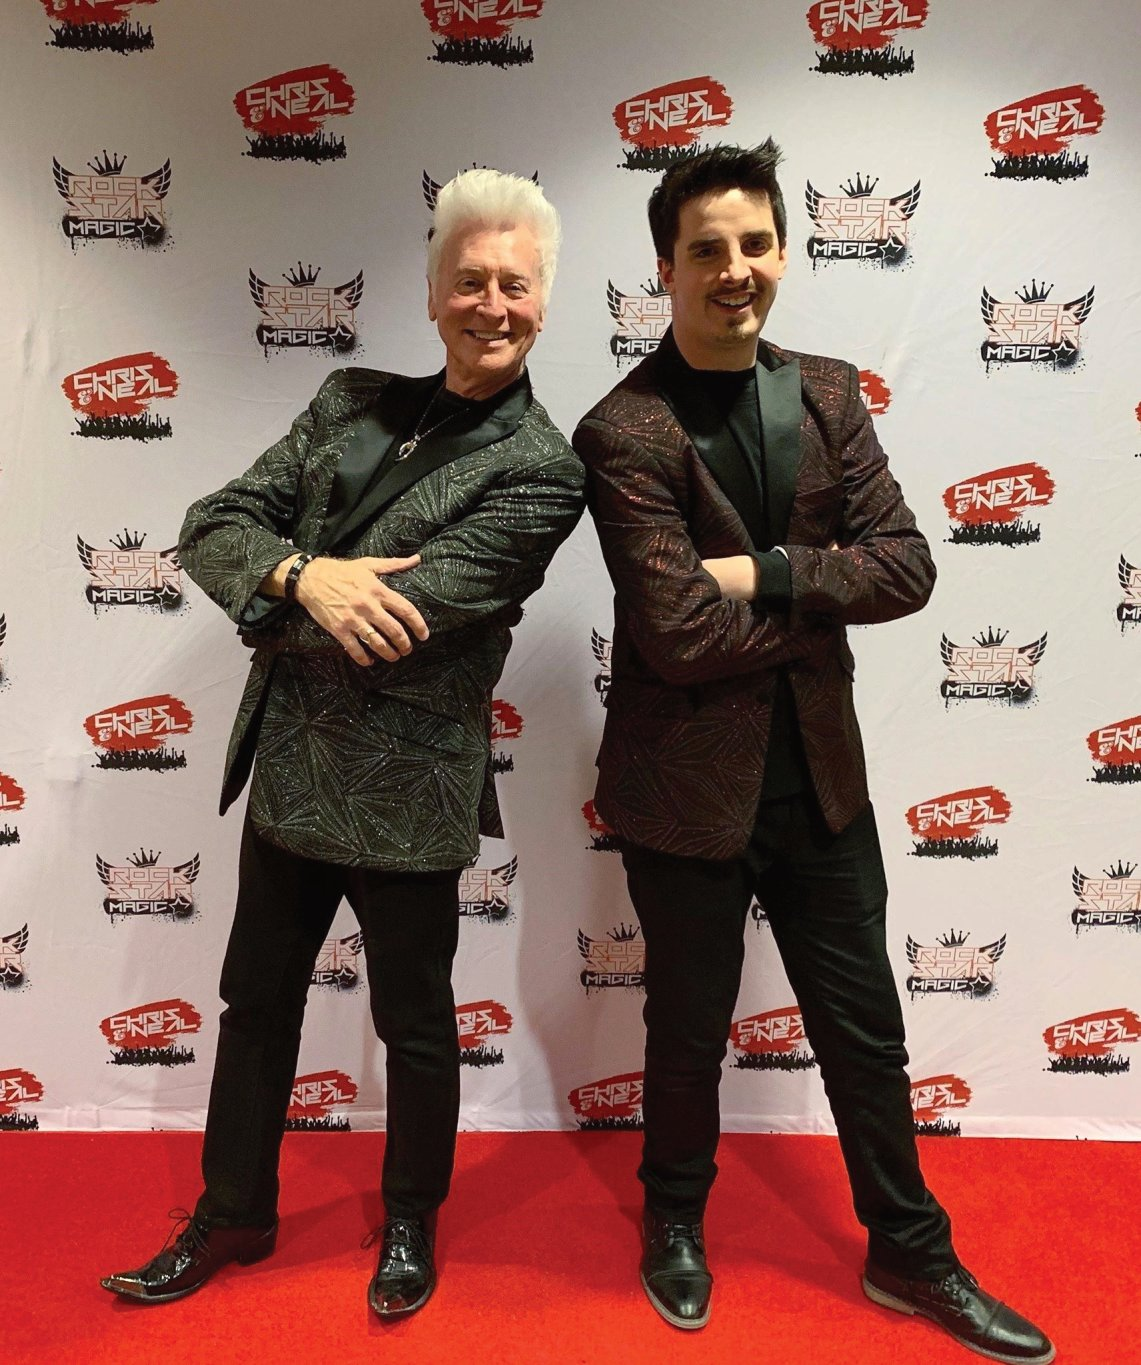 Red Carpet Experience in Raleigh, North Carolina. Best Magicians For Kids and Family Events.